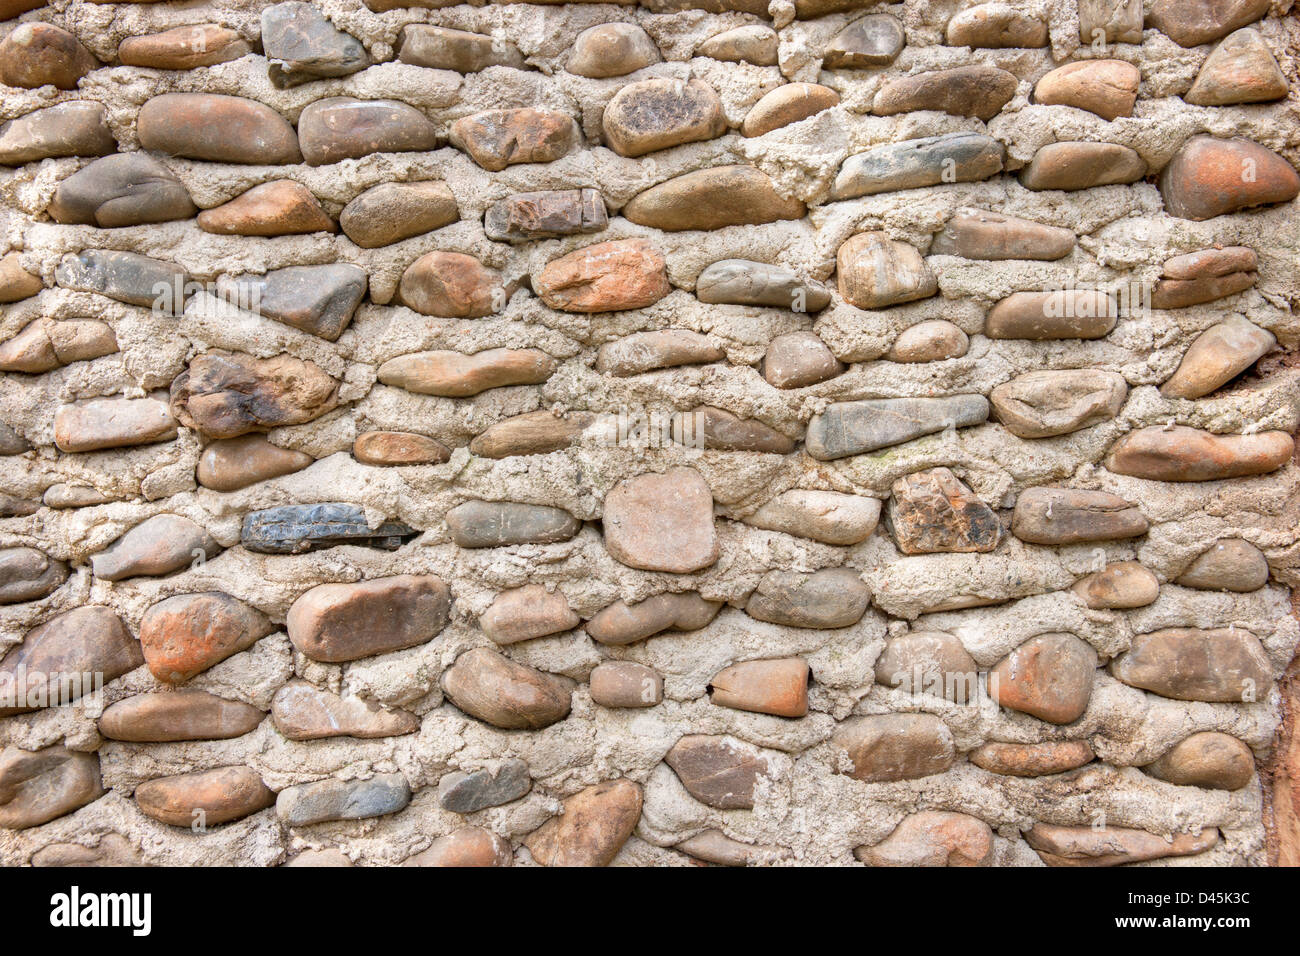 a stone wall or path background texture - Stock Image